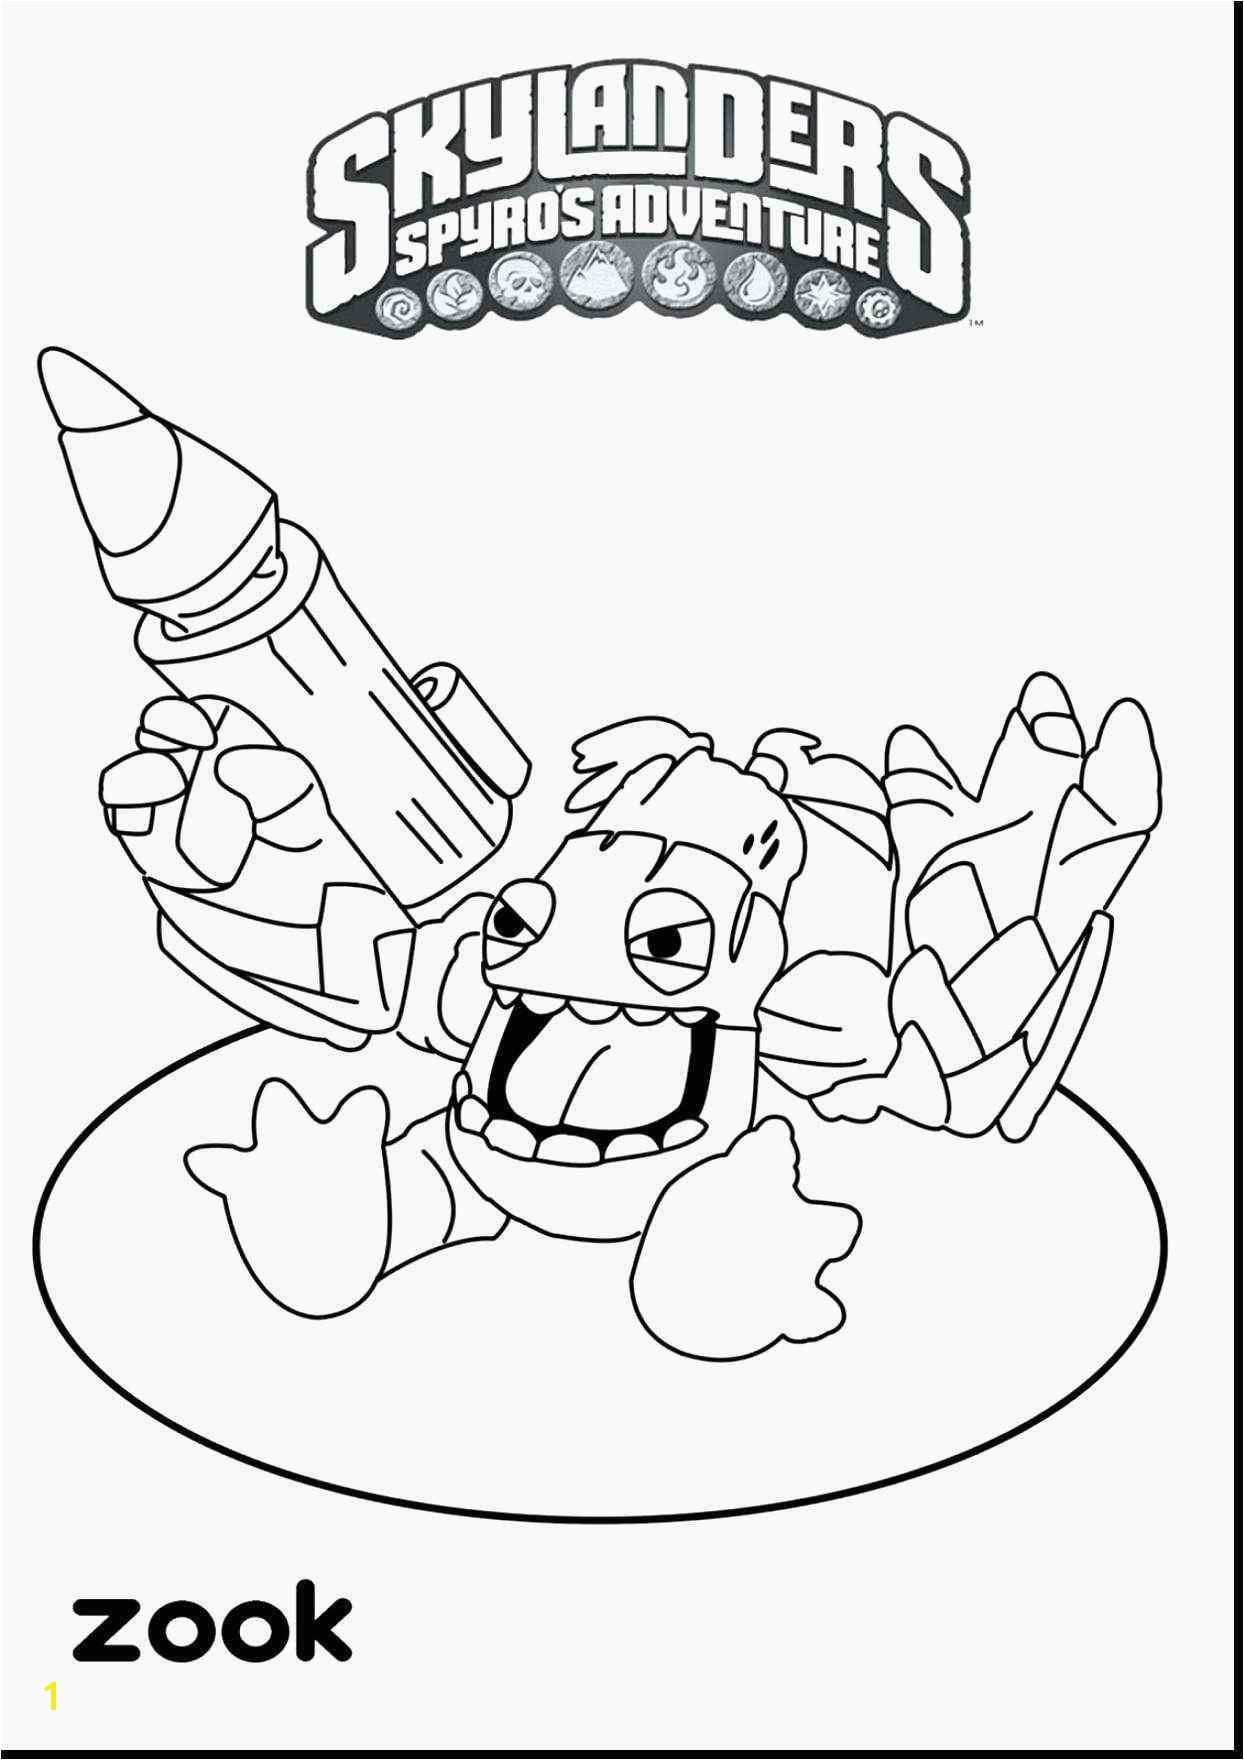 Cool Coloring Page Inspirational Witch Coloring Pages New Crayola Pages 0d Coloring Page Art Coloring Pages